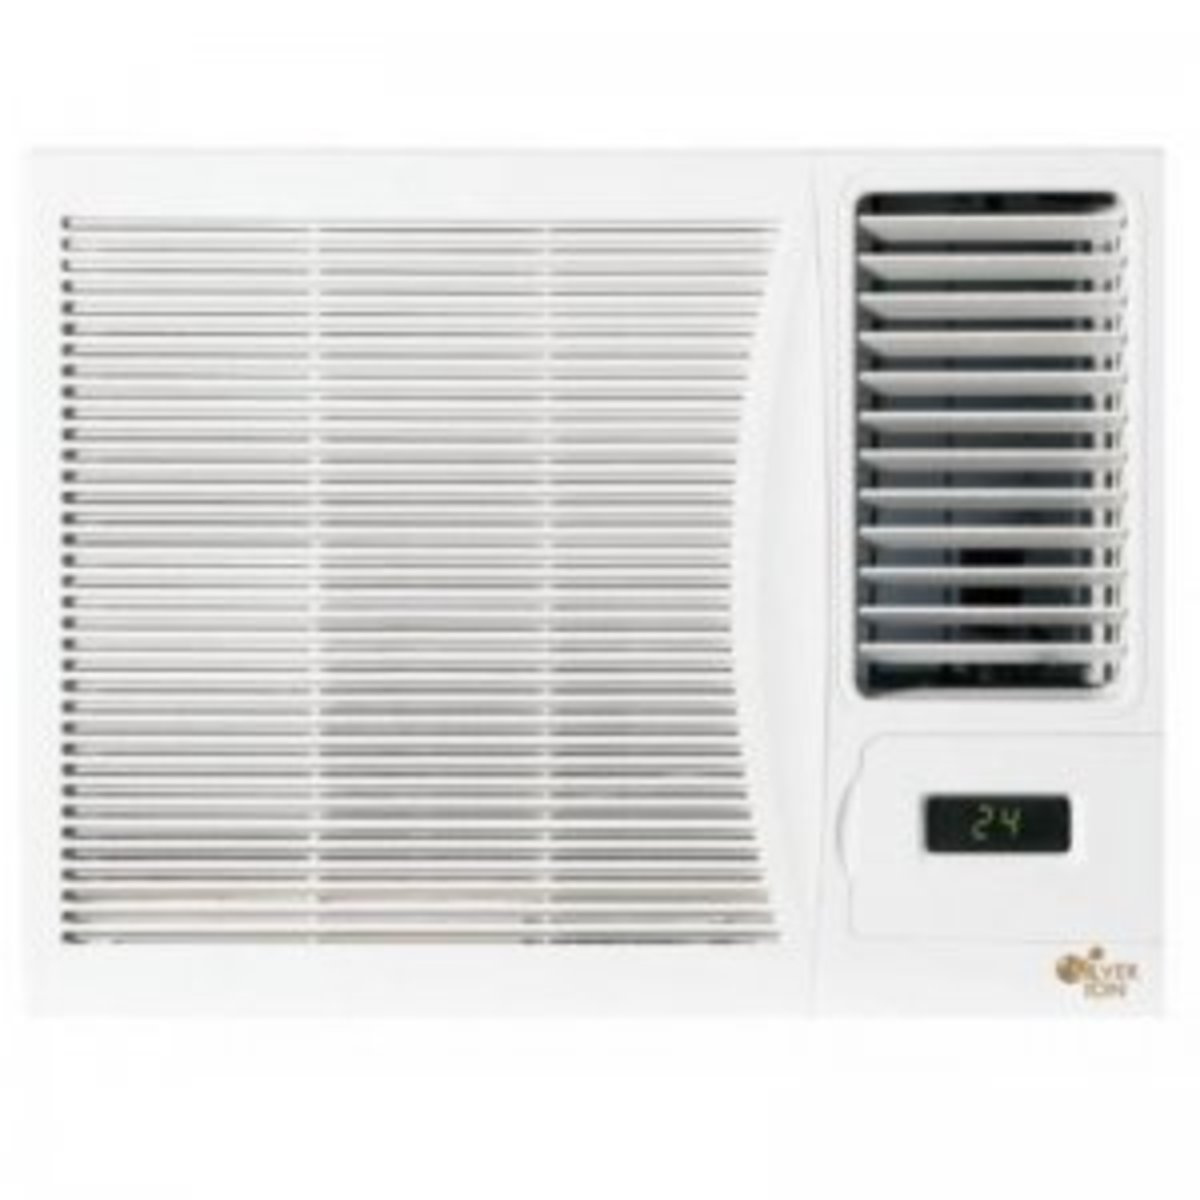 AWA12010R 1.5HP Window Type Air Conditioner with Remote Control  Hong Kong Warranty Genuine Products